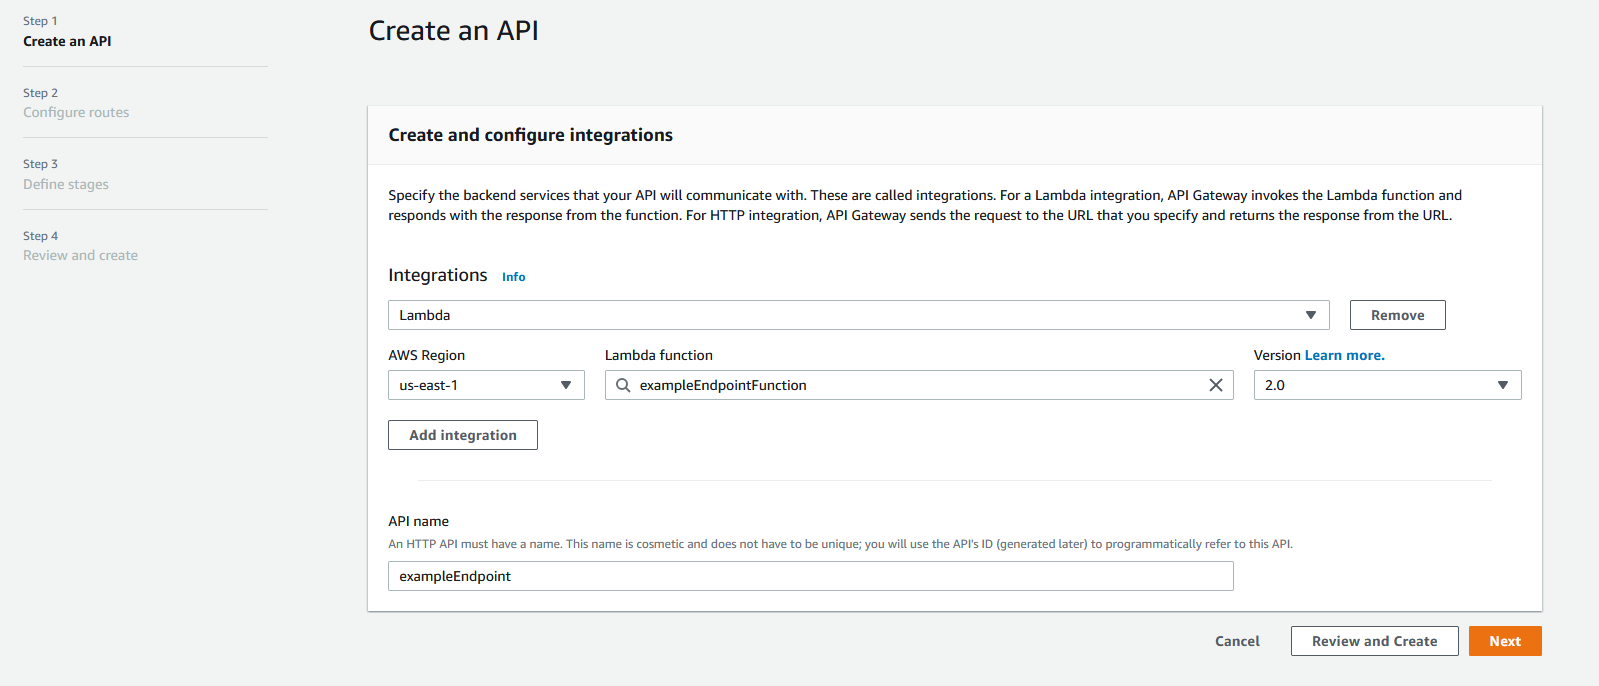 """The first step to creating an API. This API has a """"Lambda"""" integration with a Lambda function set as example endpoint function. The API name field is also filled in."""